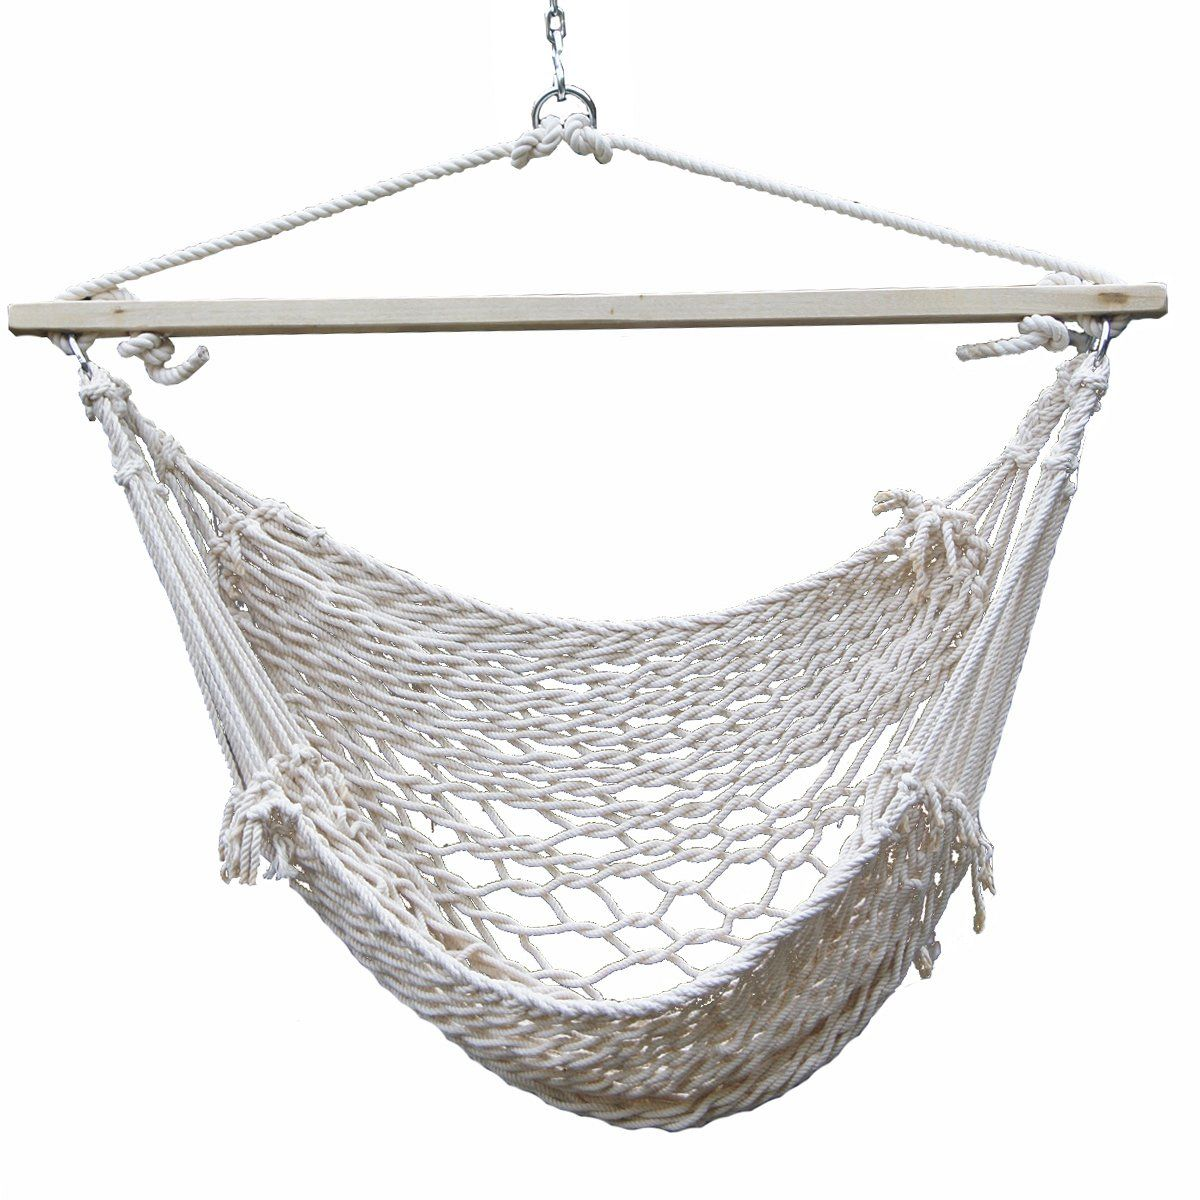 Prime garden deluxe cotton rope swing chair hand woven hammock